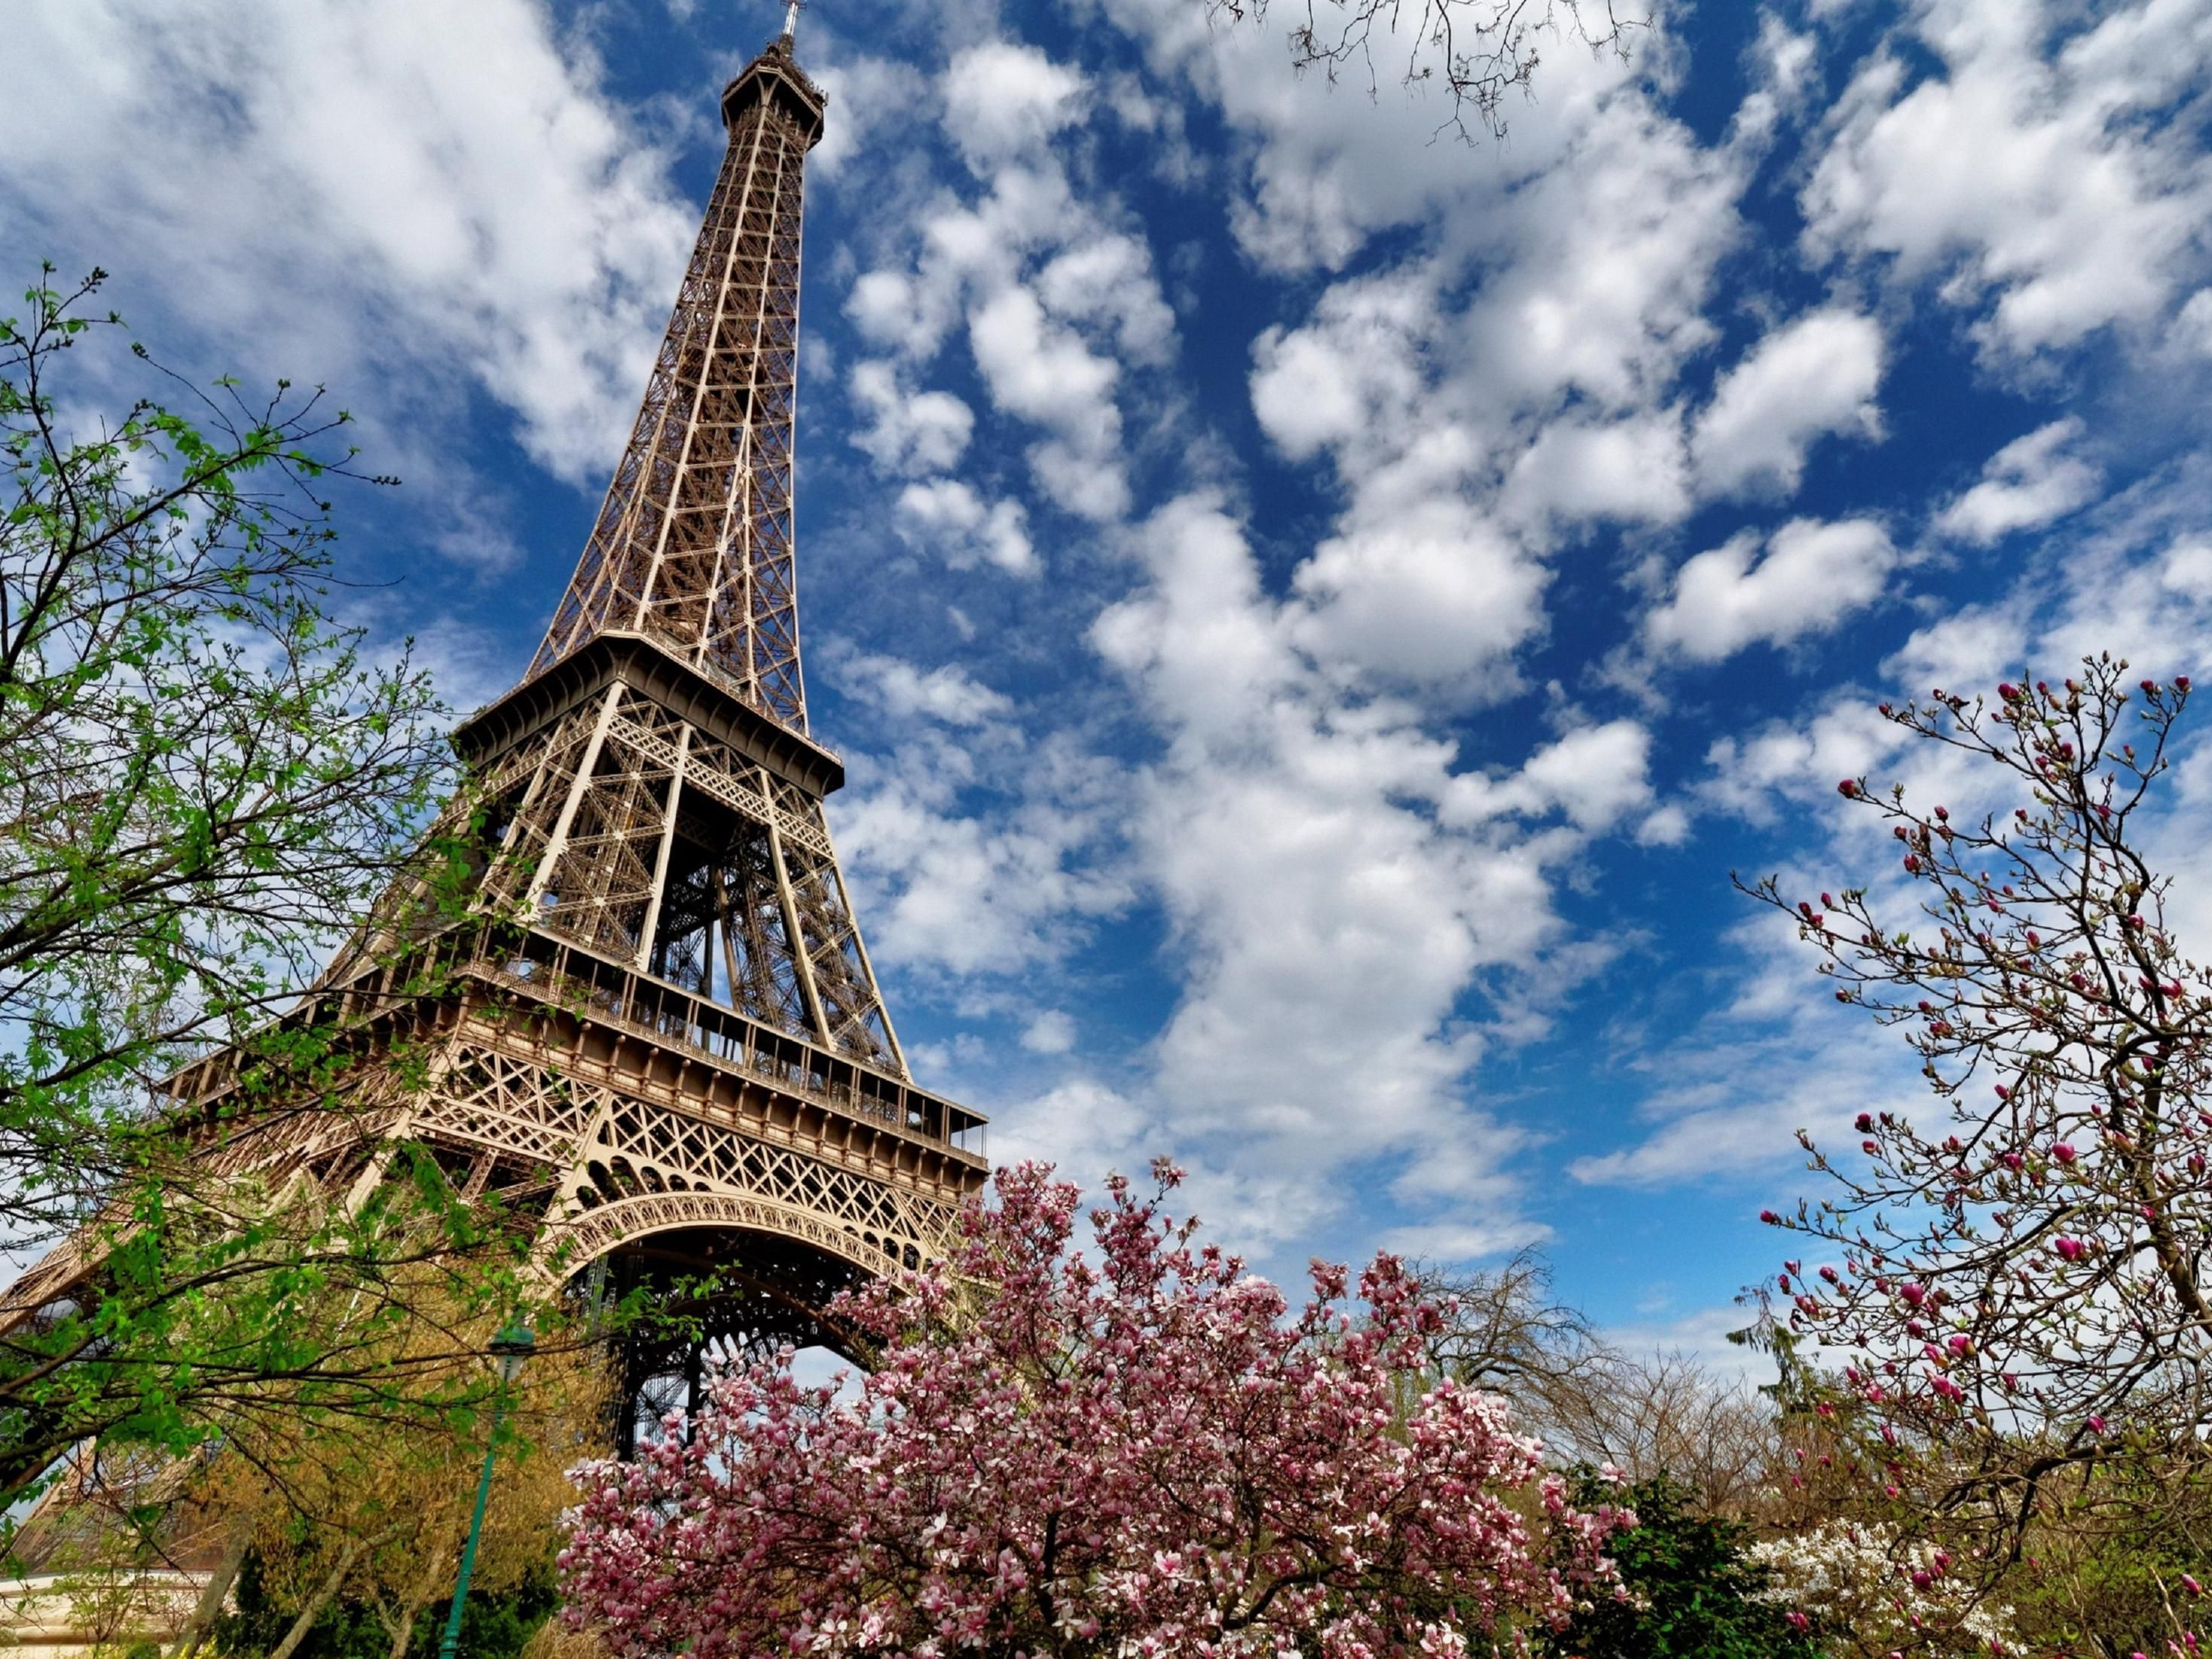 The famous 'Eiffel Tower'